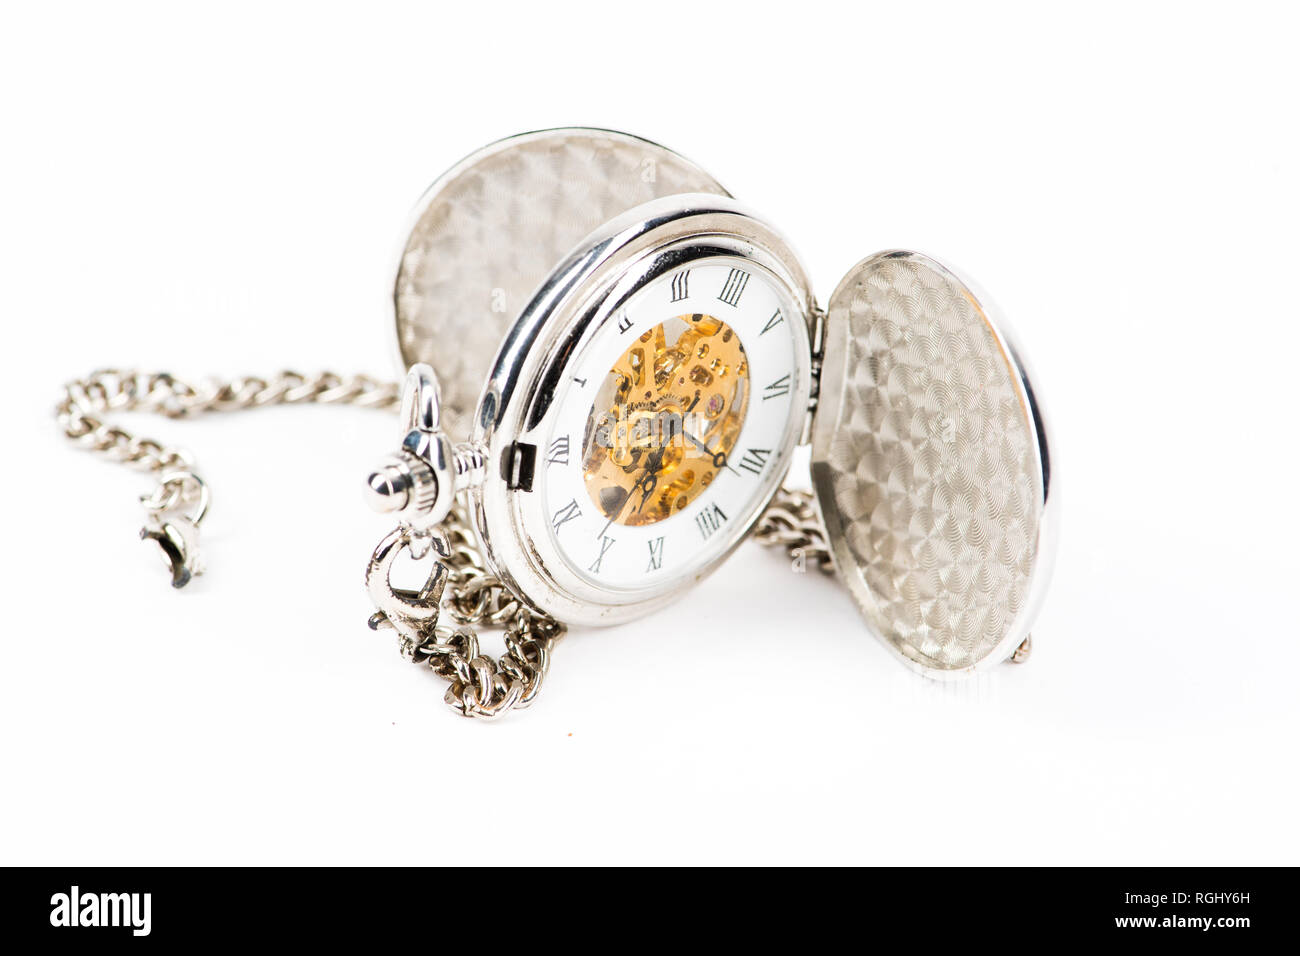 A retro old fashioned antique pocket watch or fob watch, silver metal case, open, showing the time. Isolated on white - Stock Image